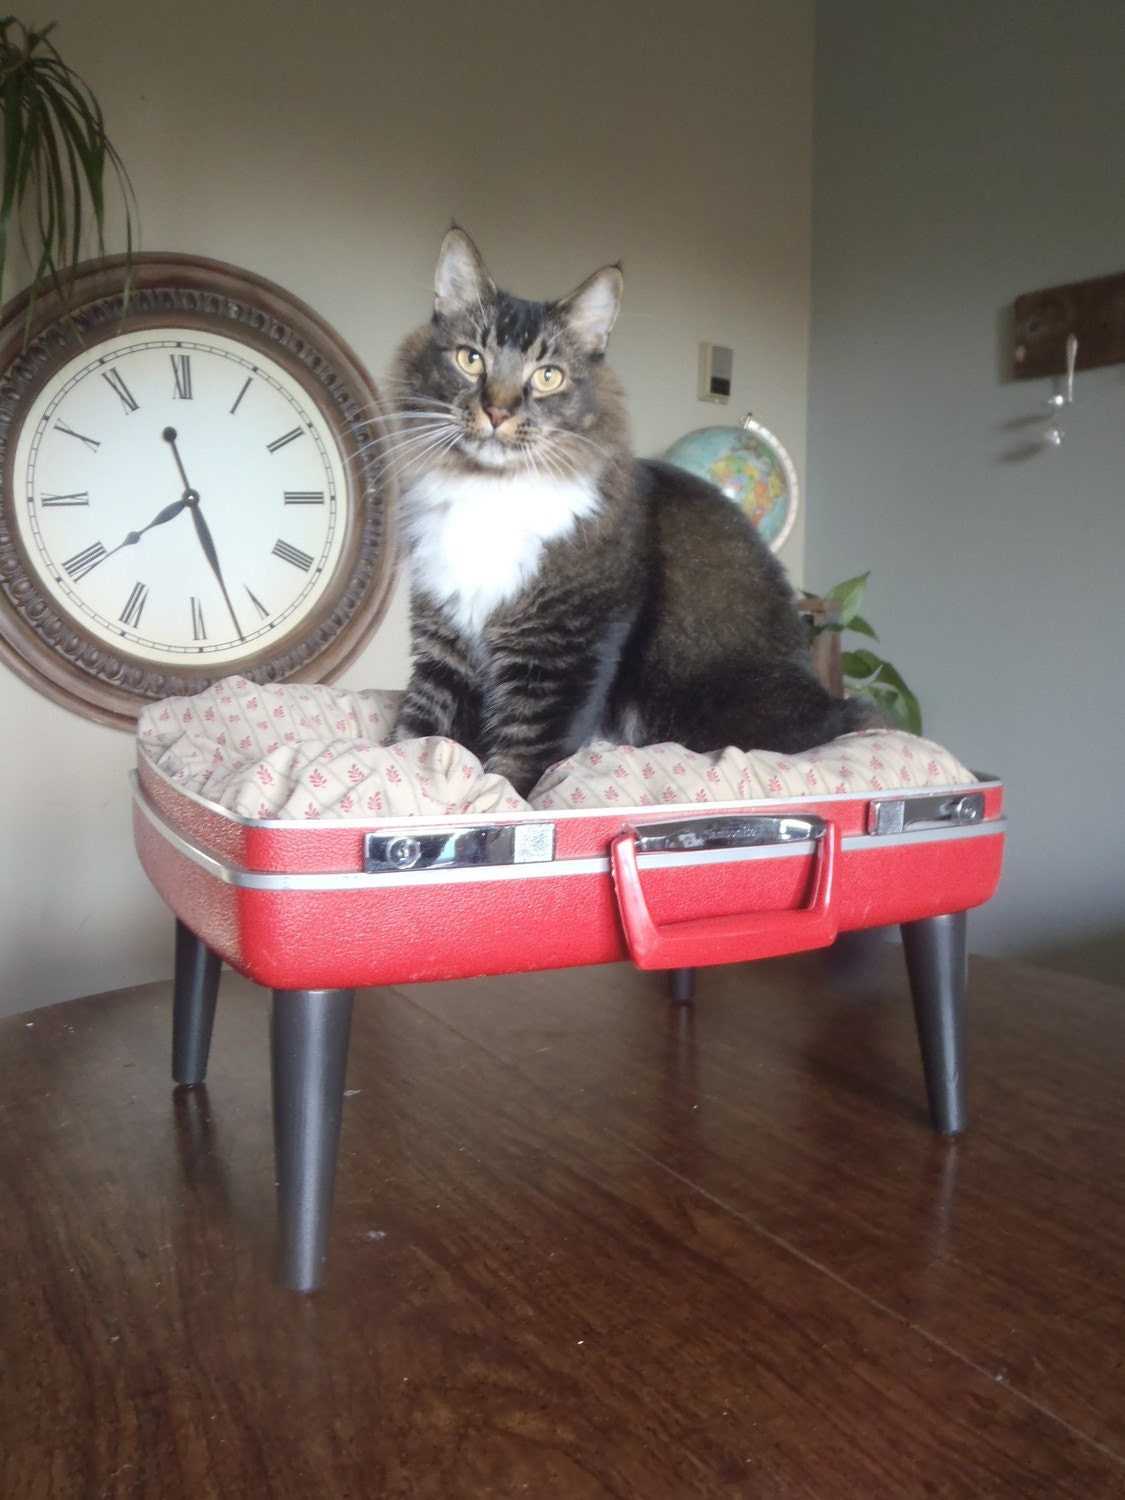 Lovable Luggage Pet Bed - Reds and Browns - 2 dollars goes to tlccatrescue